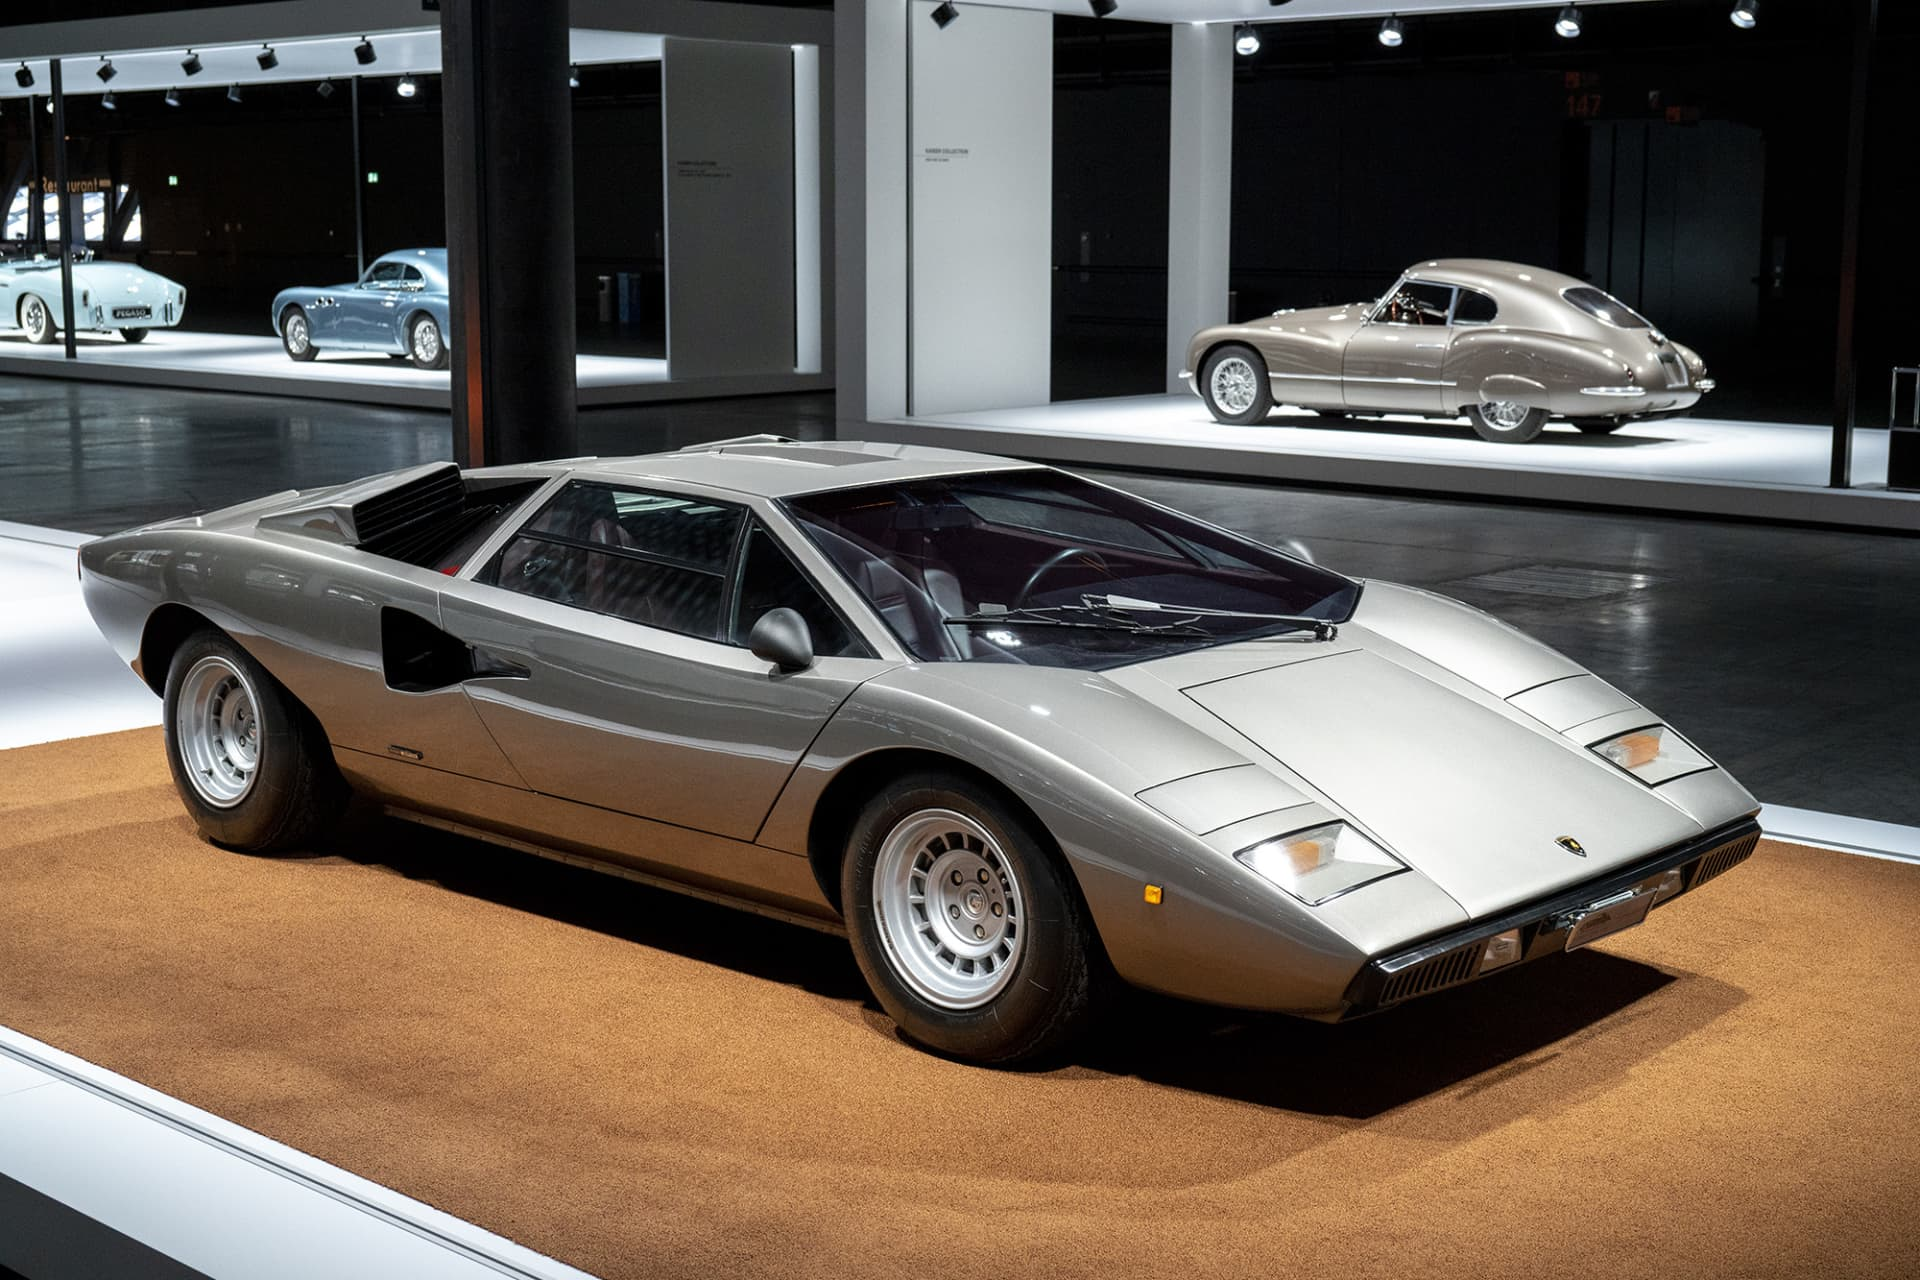 "This masterpiece and perhaps the world's most famous iconic car is undoubtedly designer Marcello Gandini's Lamborghini Countach. The model was first shown at Geneva's car show in 1971. The name arose when one of the craftsmen at the factory spontaneously exclaimed contacc"" when he first saw the car. ""Contacc"" is Piedemonte dialect and can be loosely translated into ""wow"". In 1974, the finished car rolled out from the factory and could reach a speed of 300 kilometers per hour even back then thanks to its shape and the powerful V12 engine."